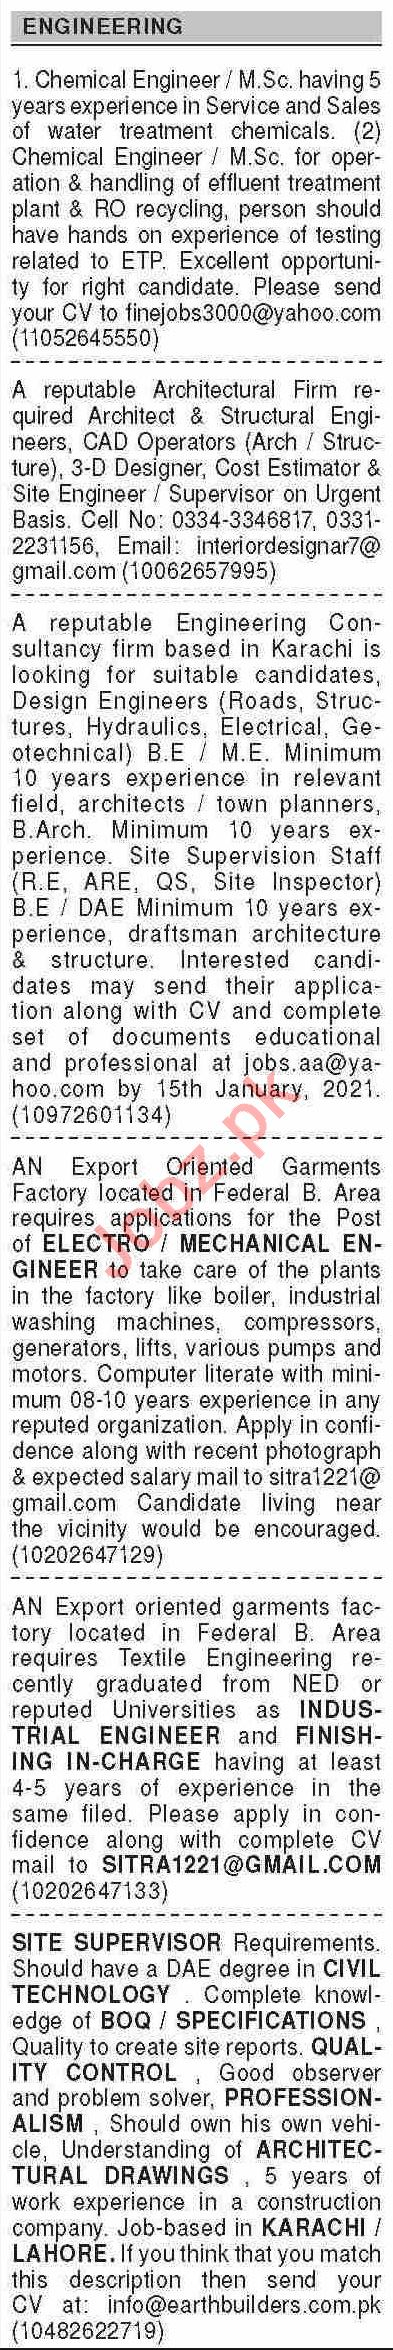 Dawn Sunday Classified Ads 3rd Jan 2021 for Engineering